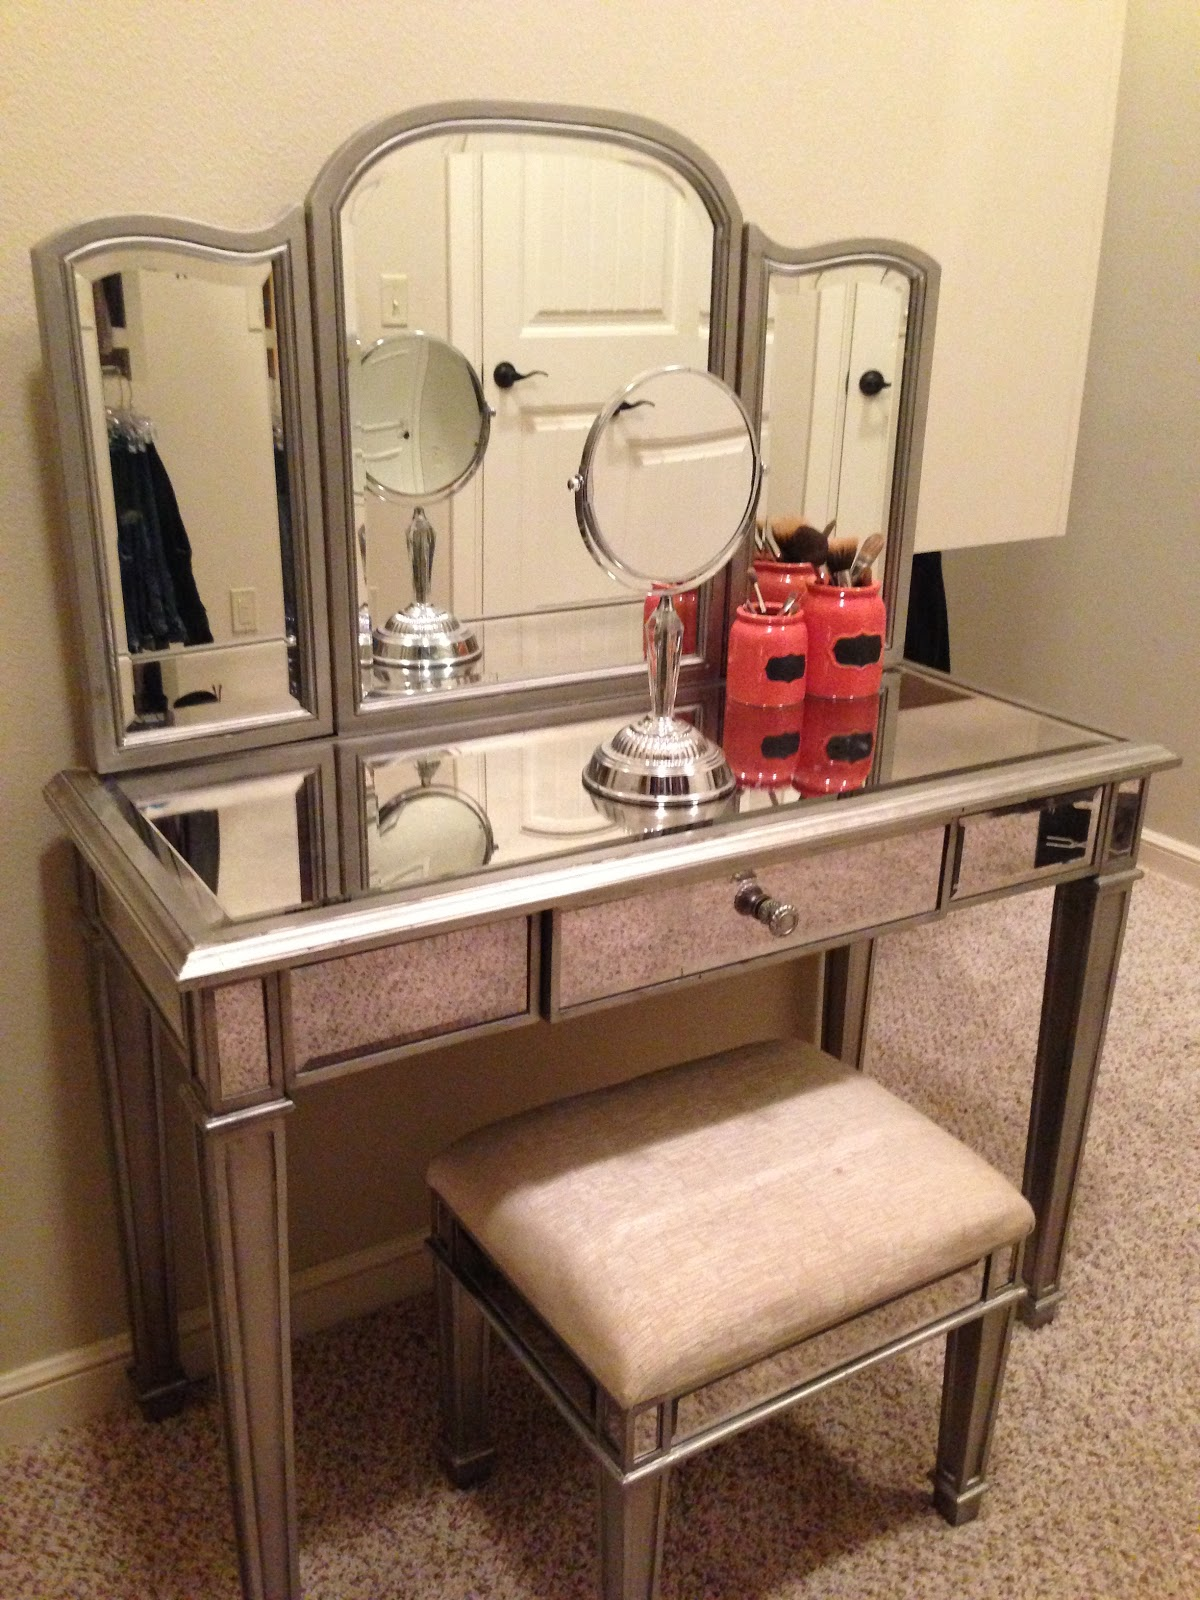 Makeup Ideas Bed Bath And Beyond Makeup Vanity : From Bed Bath And Beyond  In The